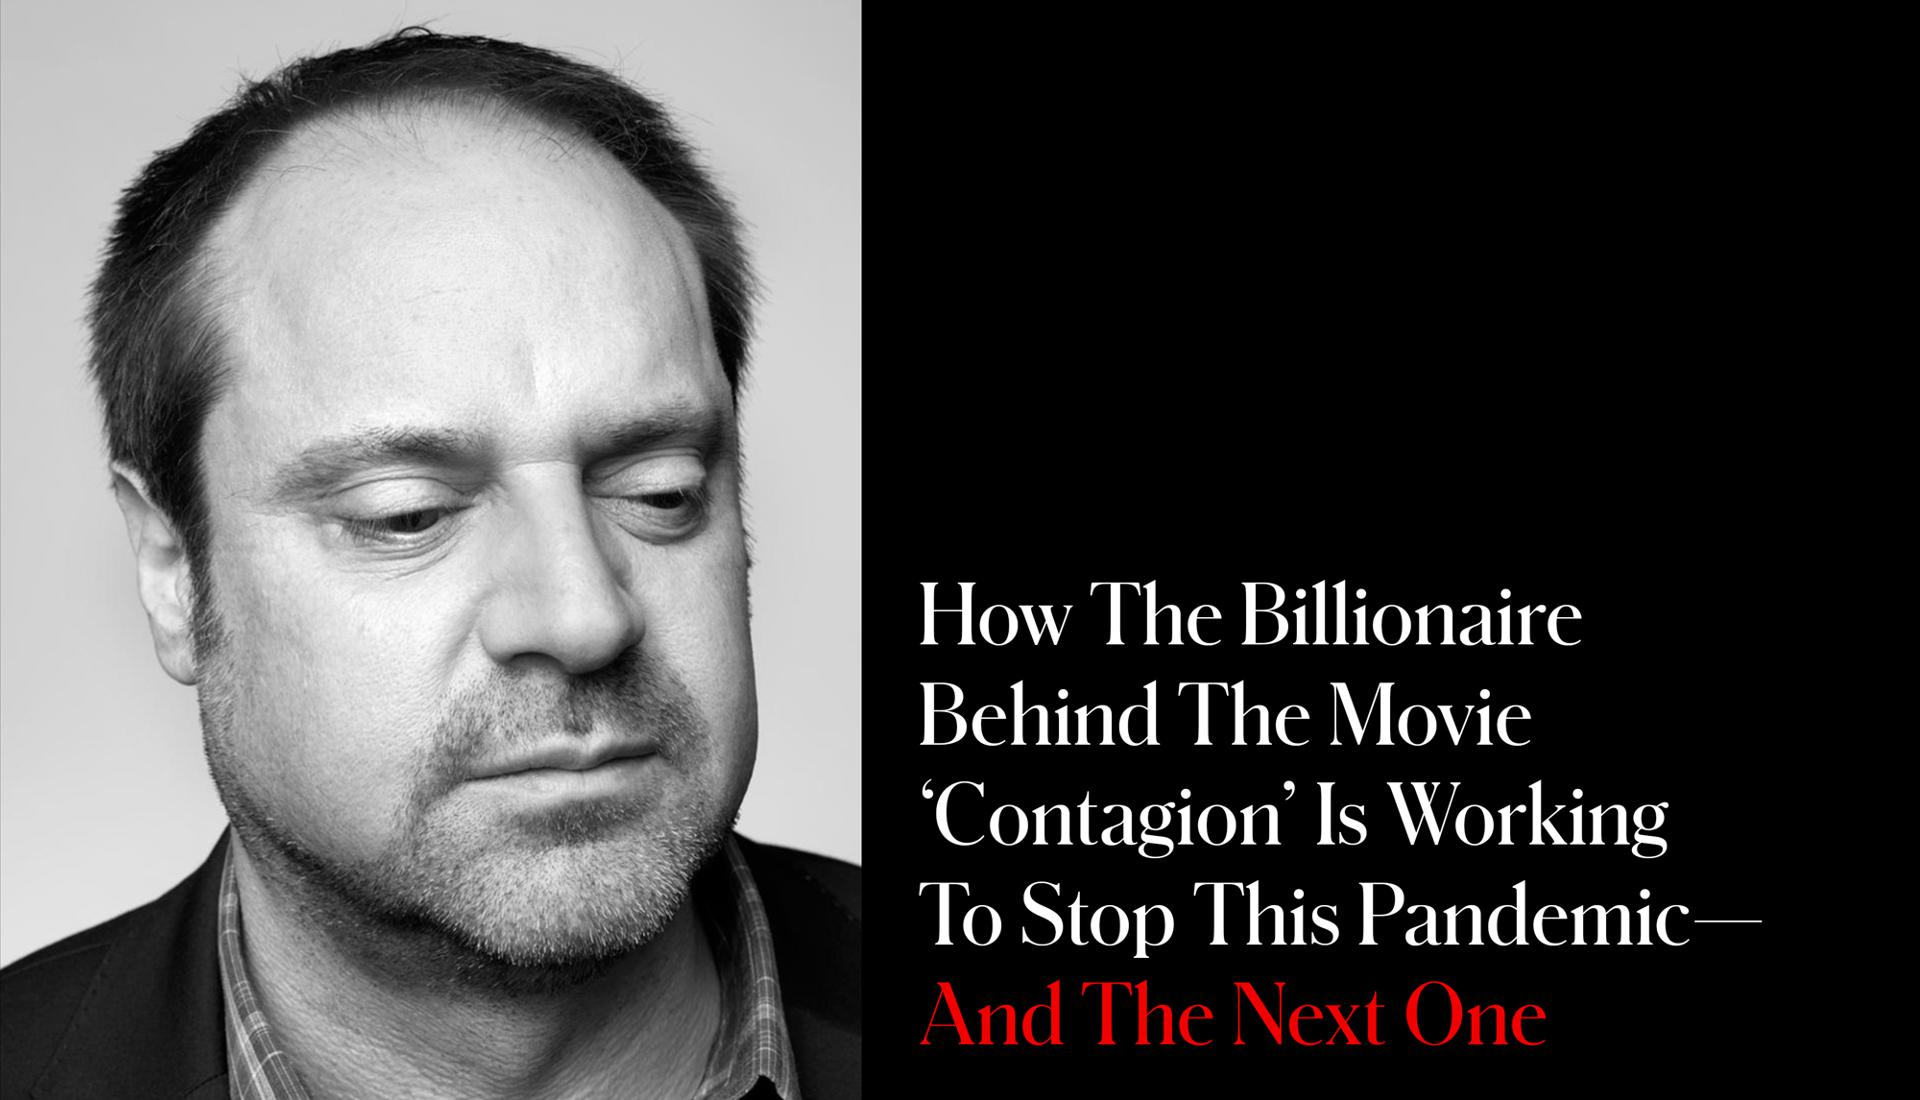 How The Billionaire Behind The Movie 'Contagion' Is Working To Stop This Pandemic—And The Next One